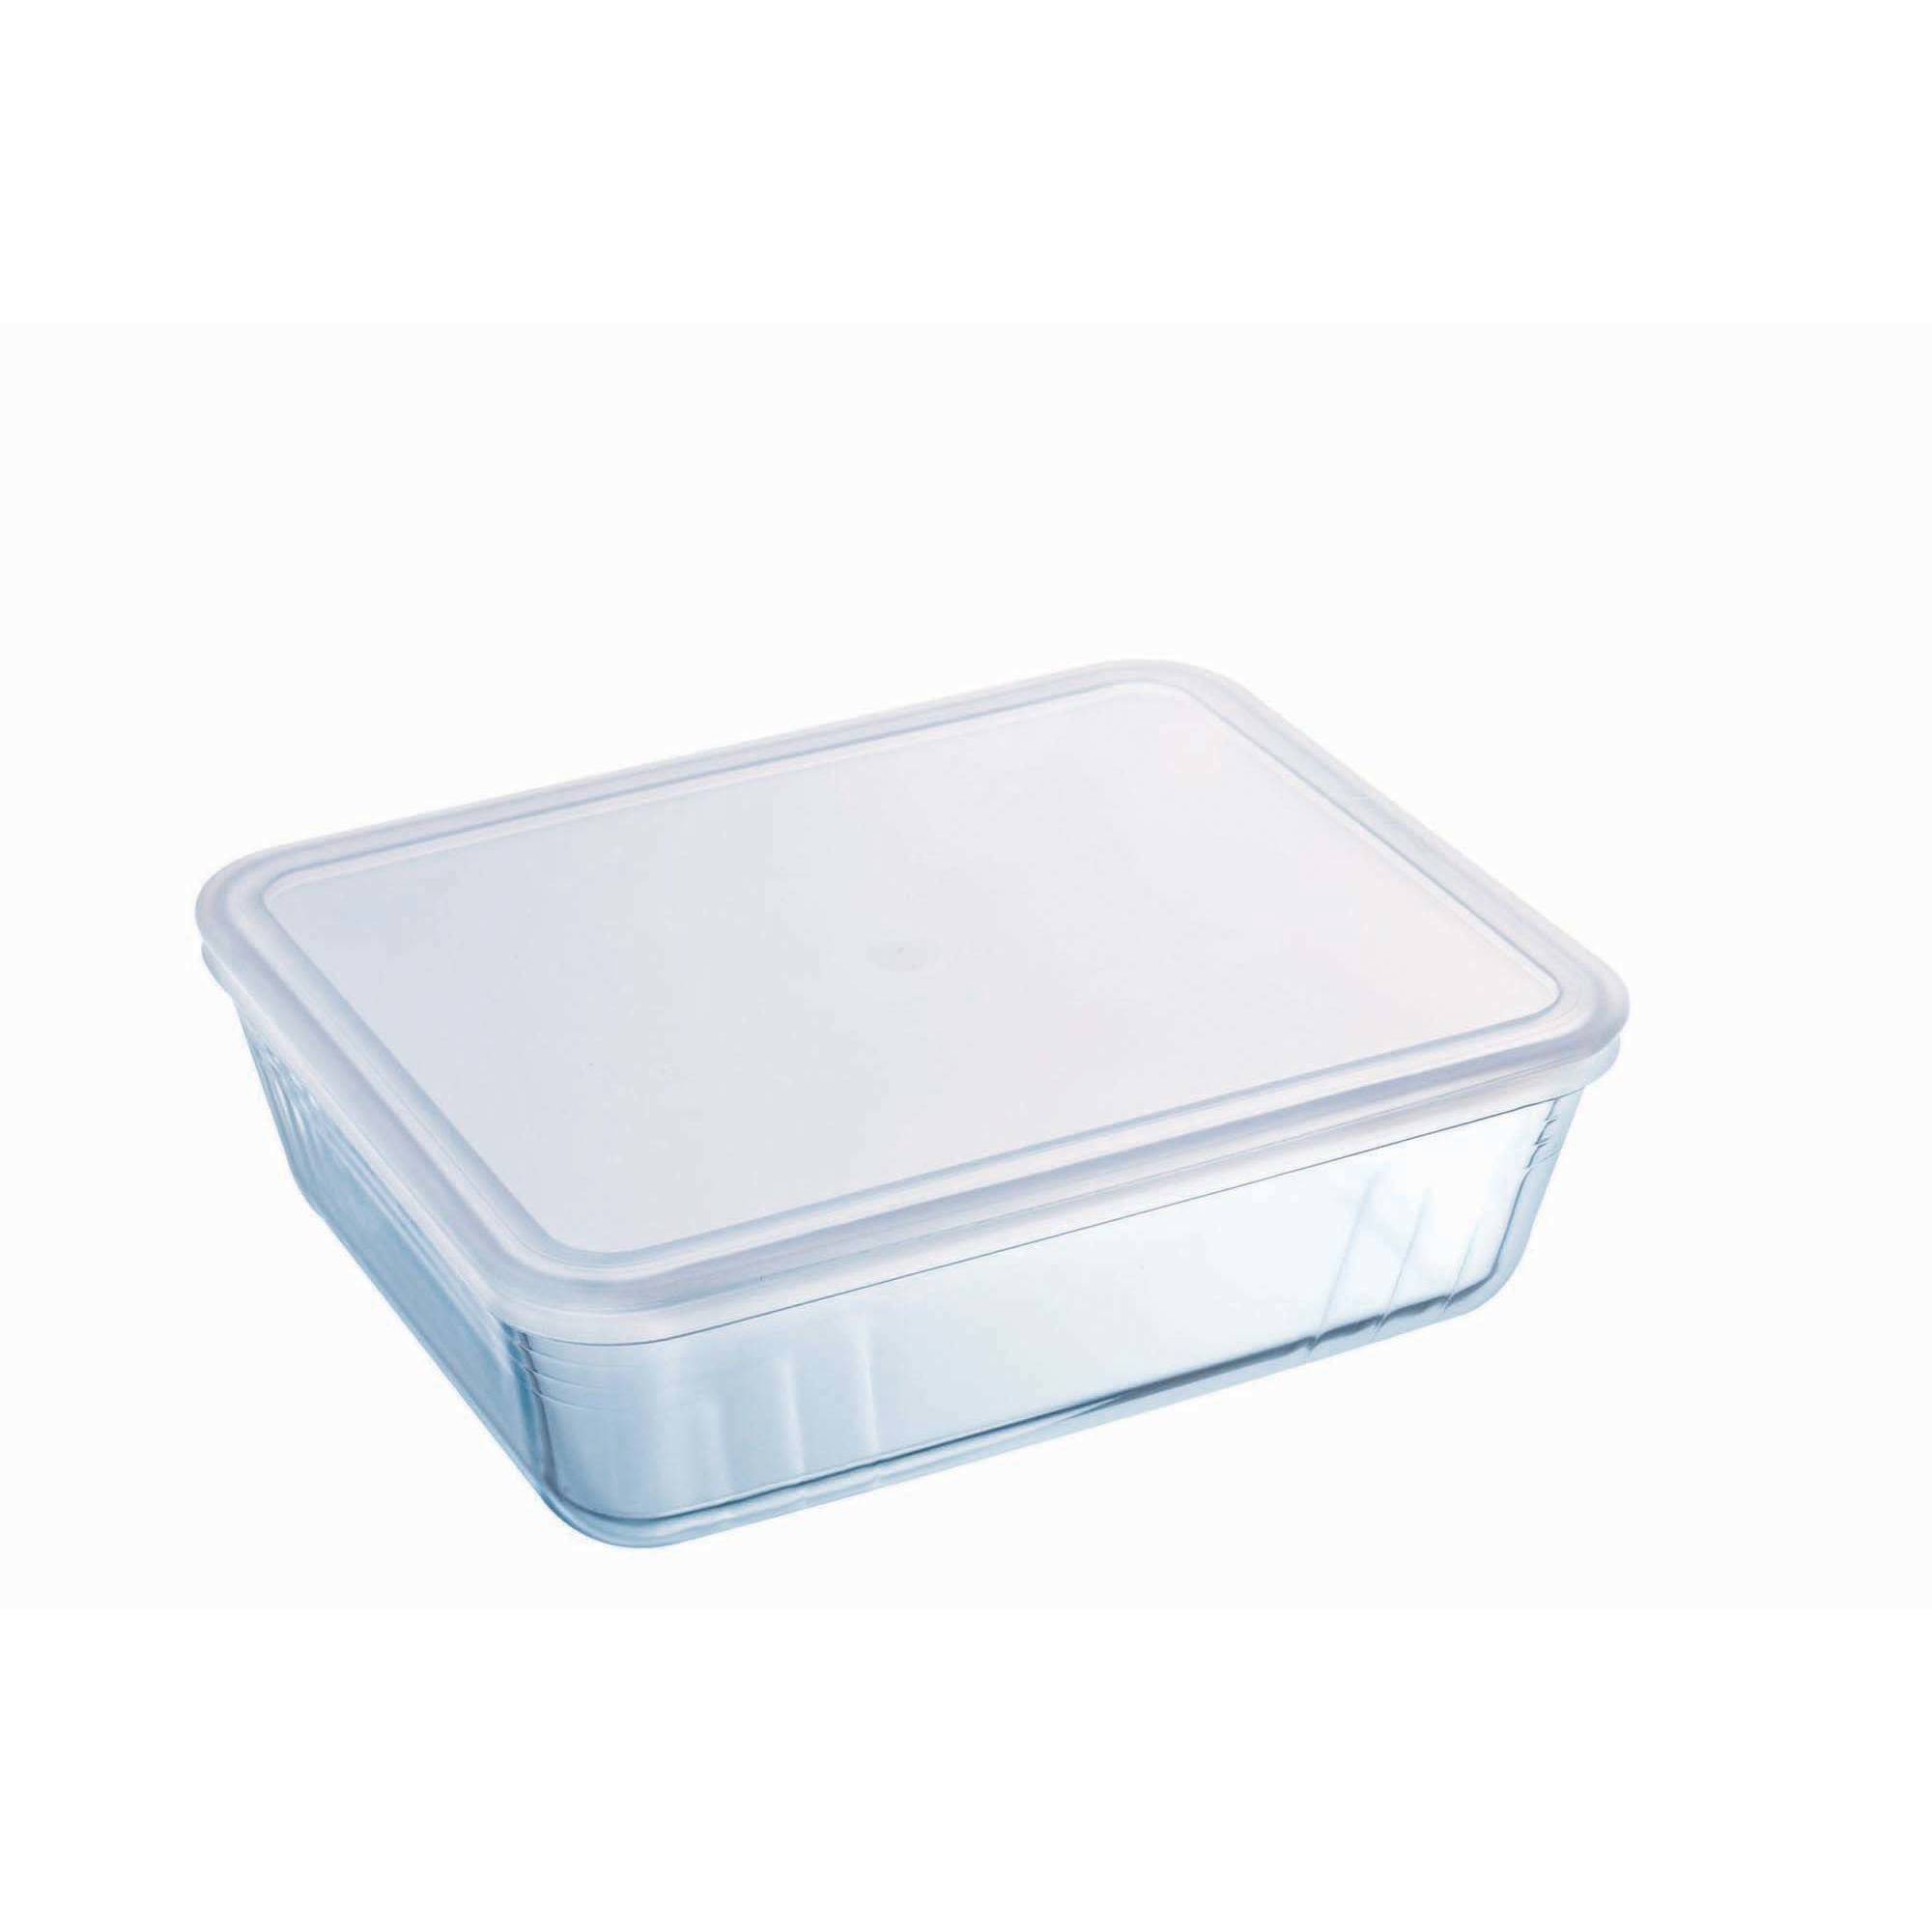 Pyrex Cook & Freeze Ugnsform med Lock/Matlåda 22×17 cm 15 l